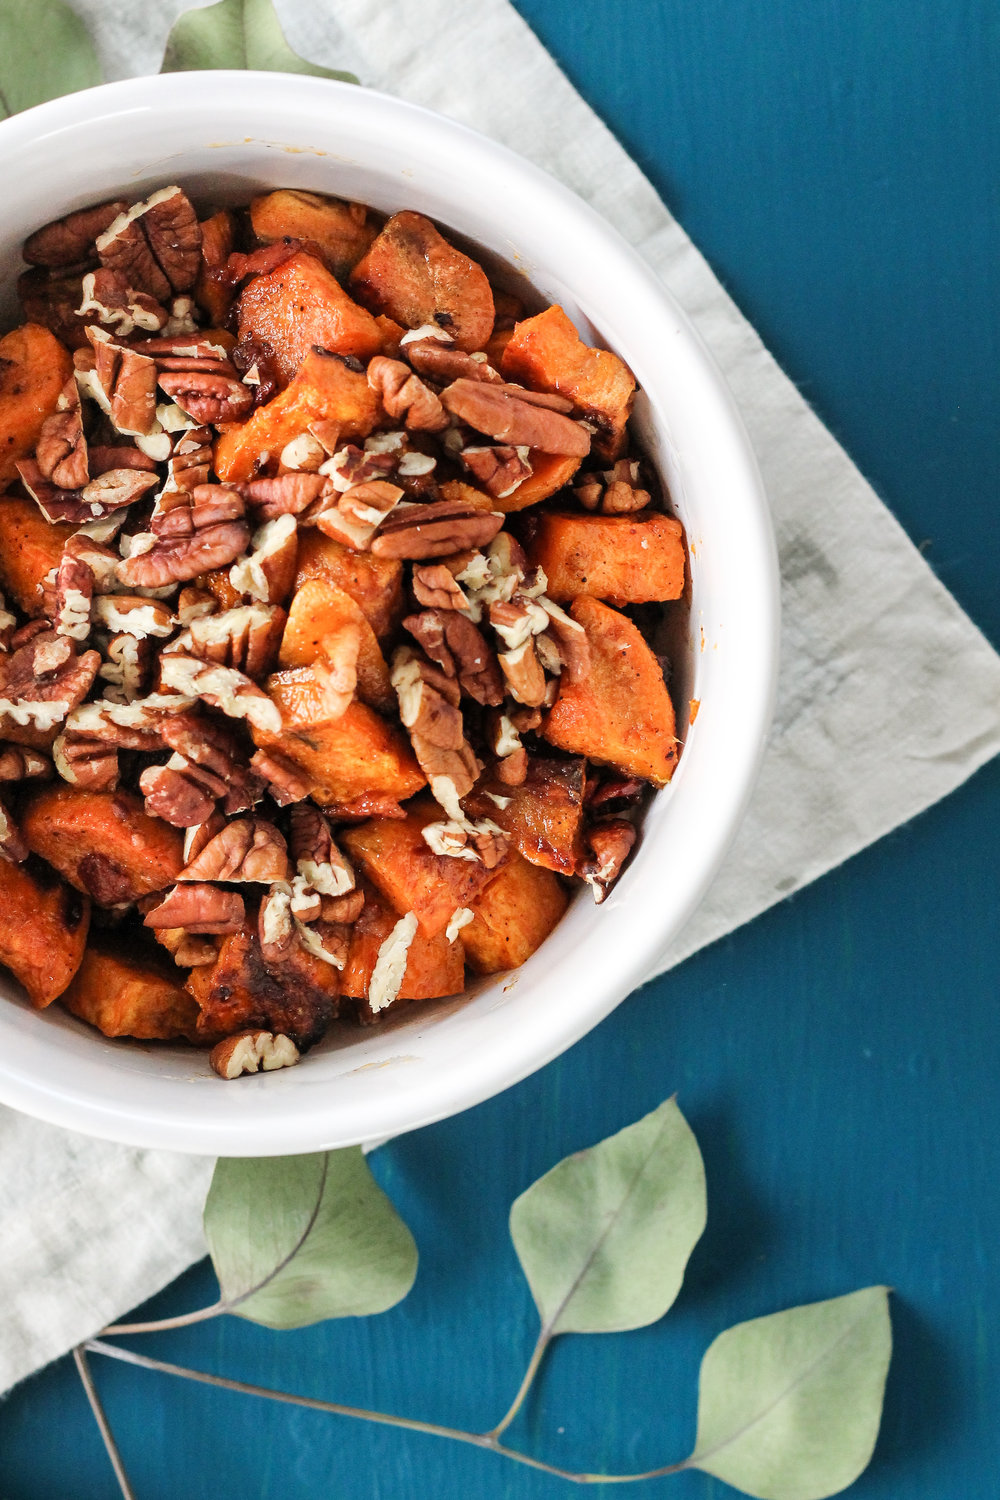 Roasted+Sweet+Potatoes+with+Maple+Ginger+Glaze+and+Bacon+[+www.pedanticfoodie.jpg